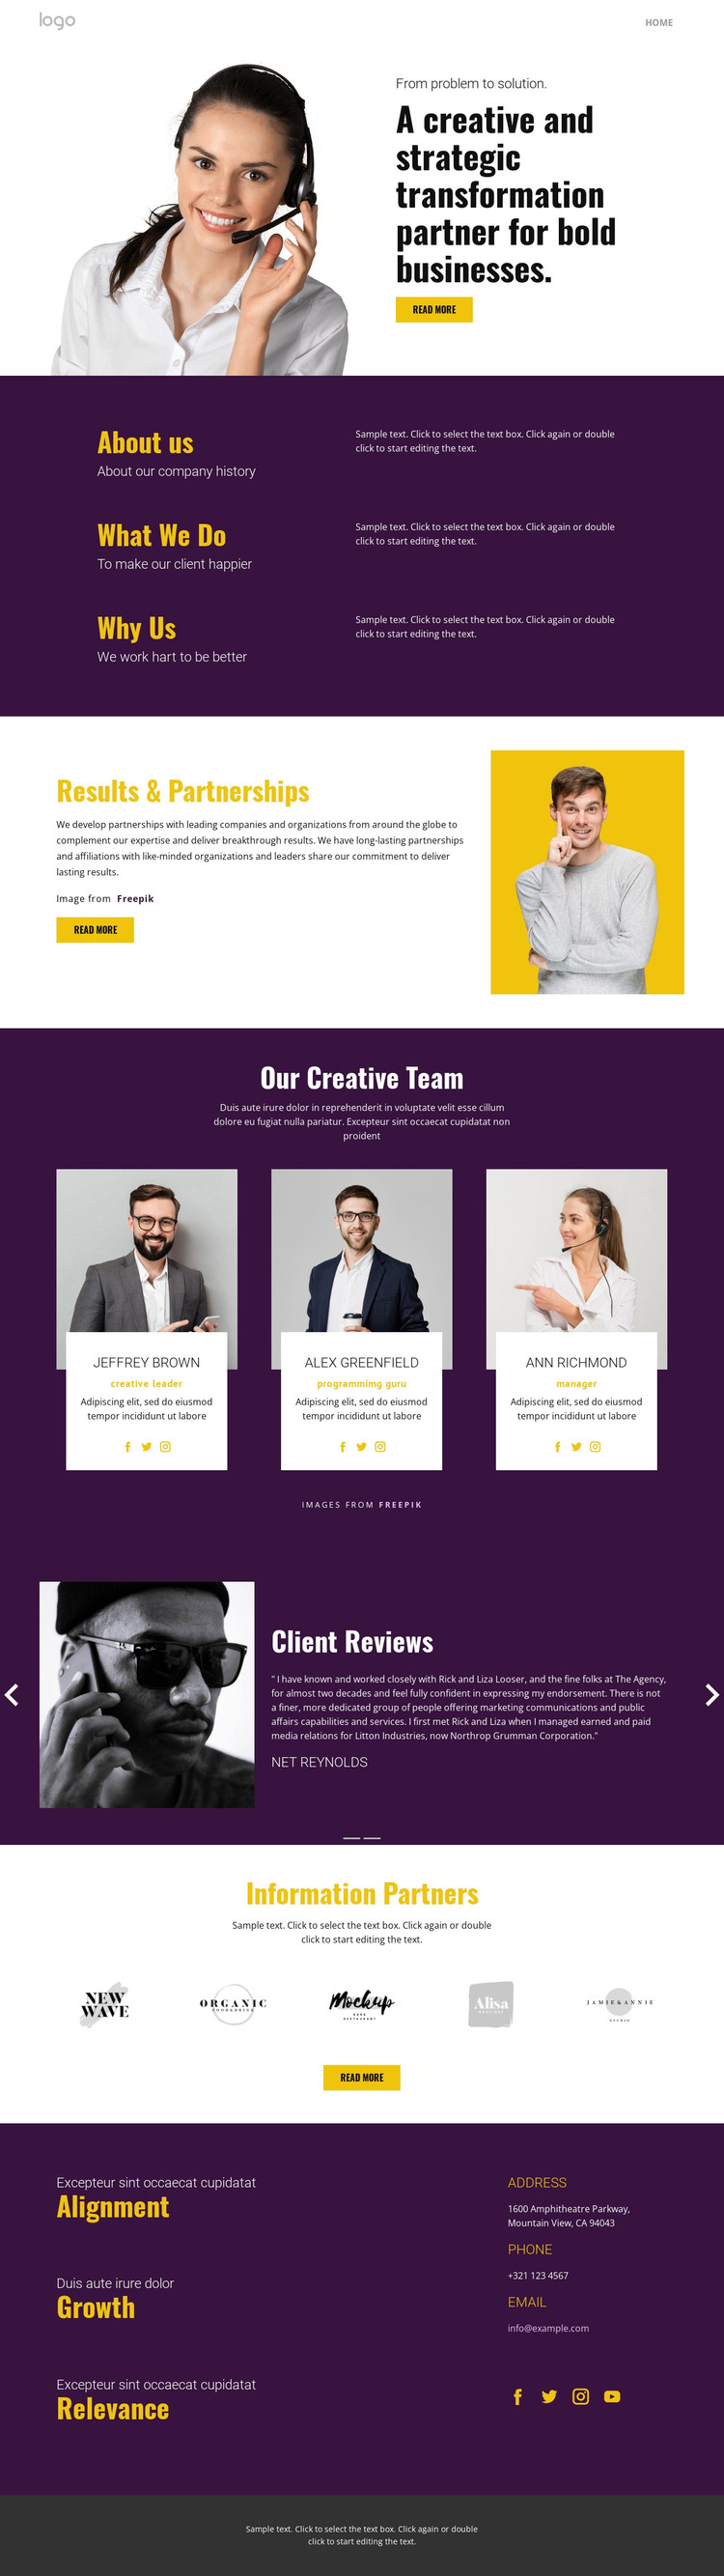 Creative strategy in business Web Design